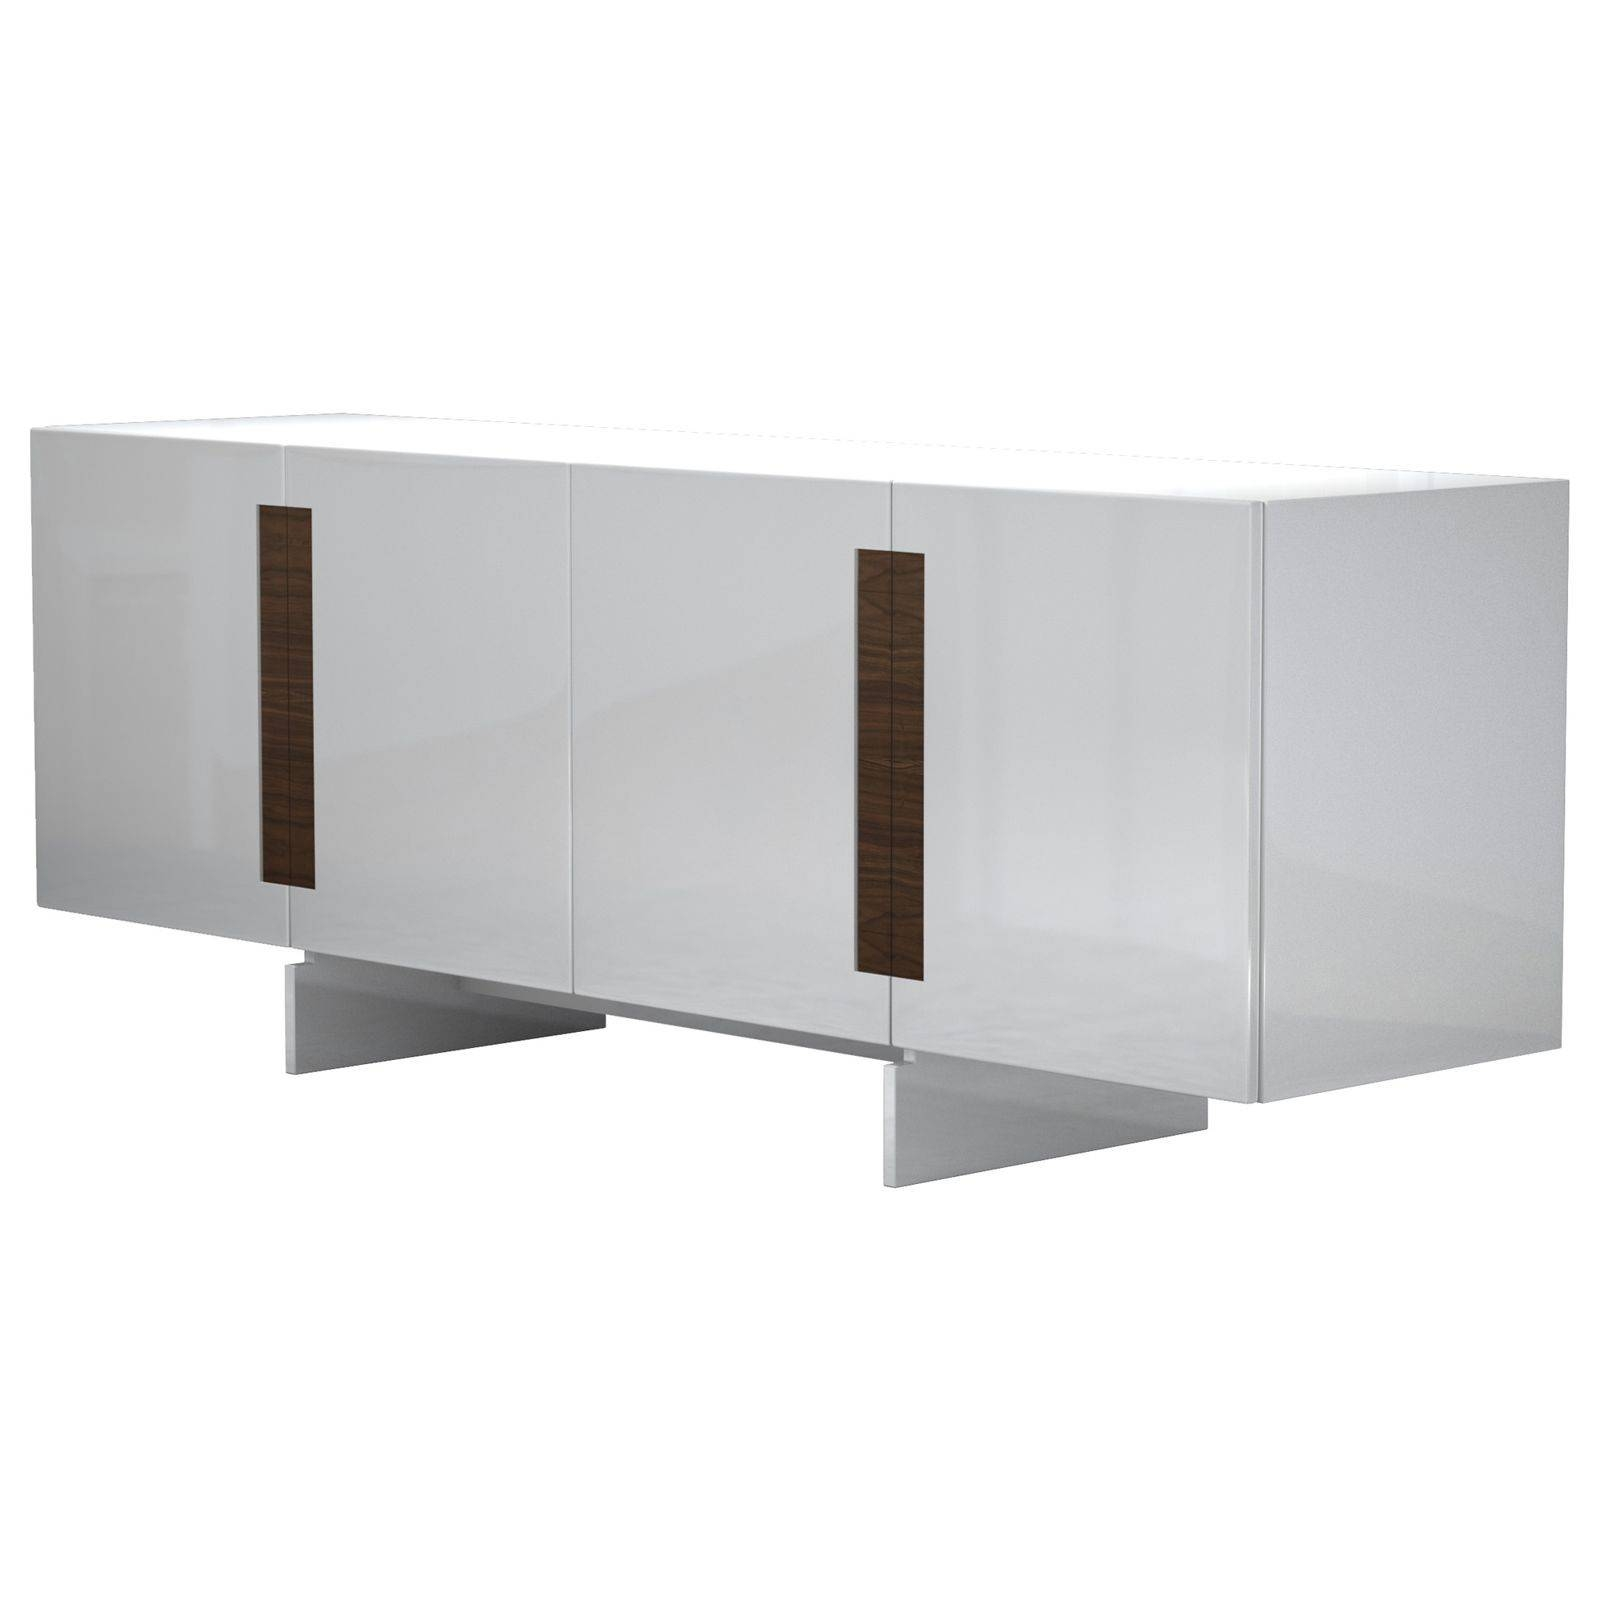 Brixton Sideboardmodloft | Modern Sideboards | Cressina pertaining to White Sideboards (Image 6 of 30)